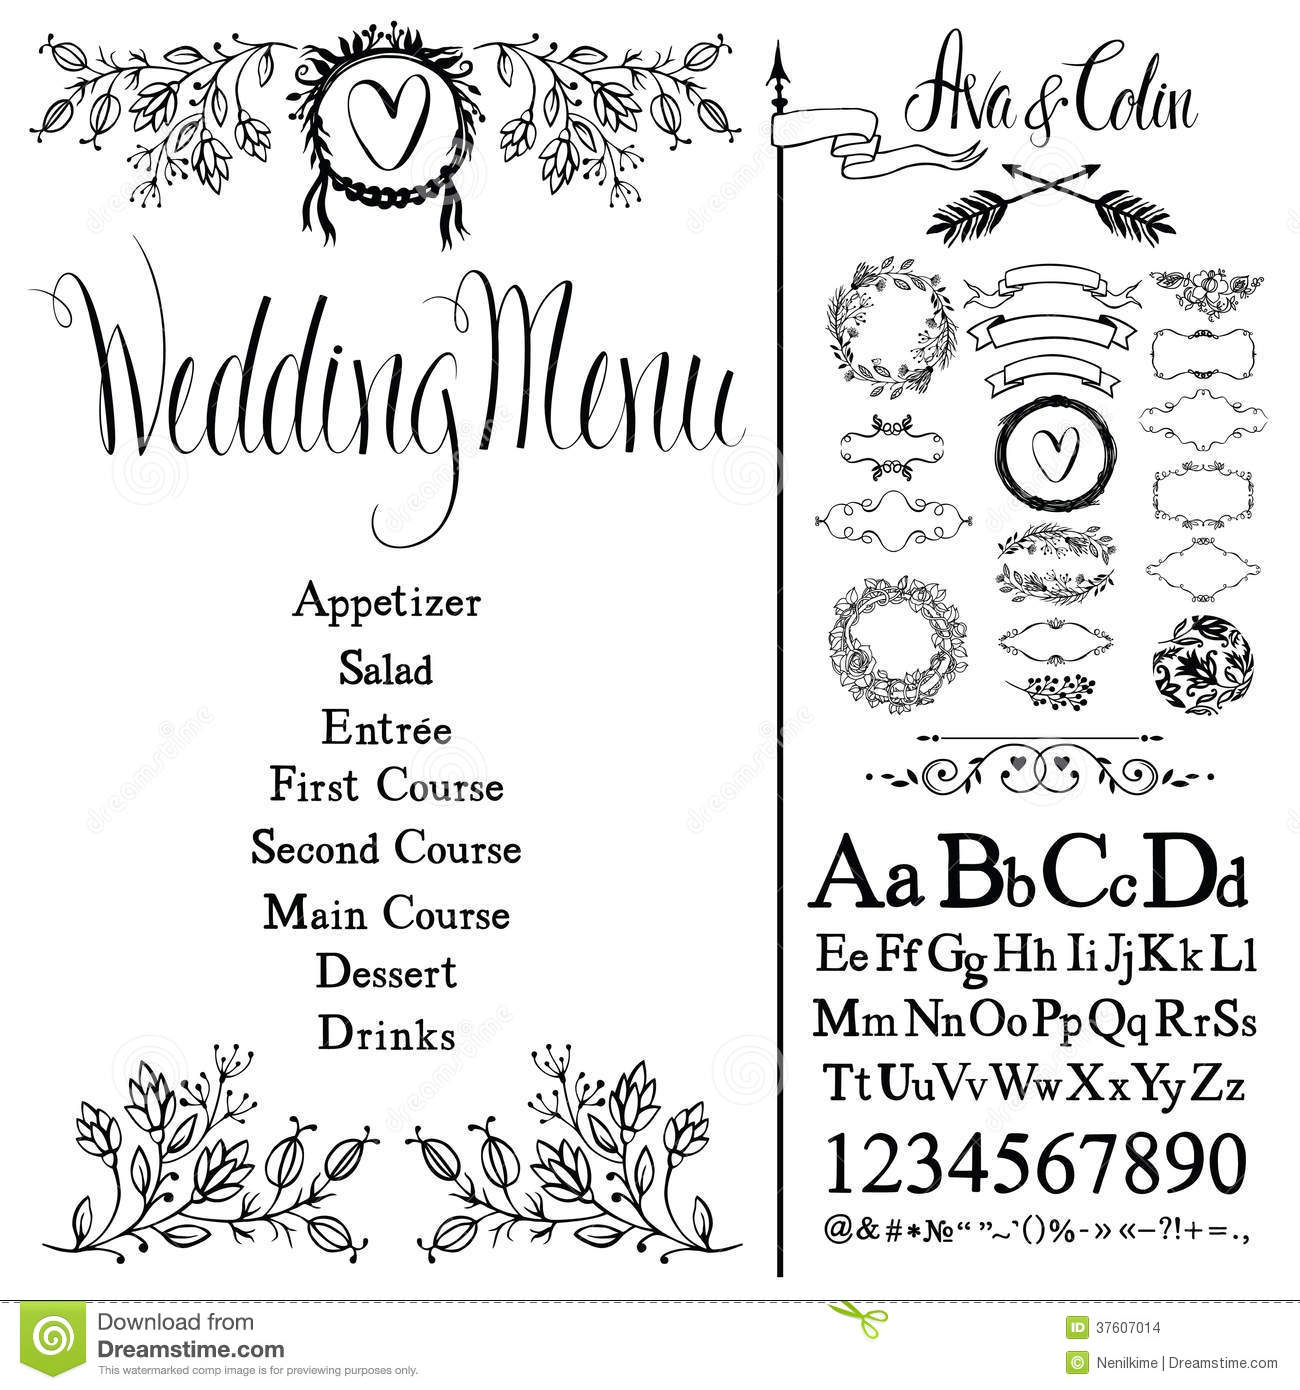 Retro Wedding Invitation as best invitations ideas